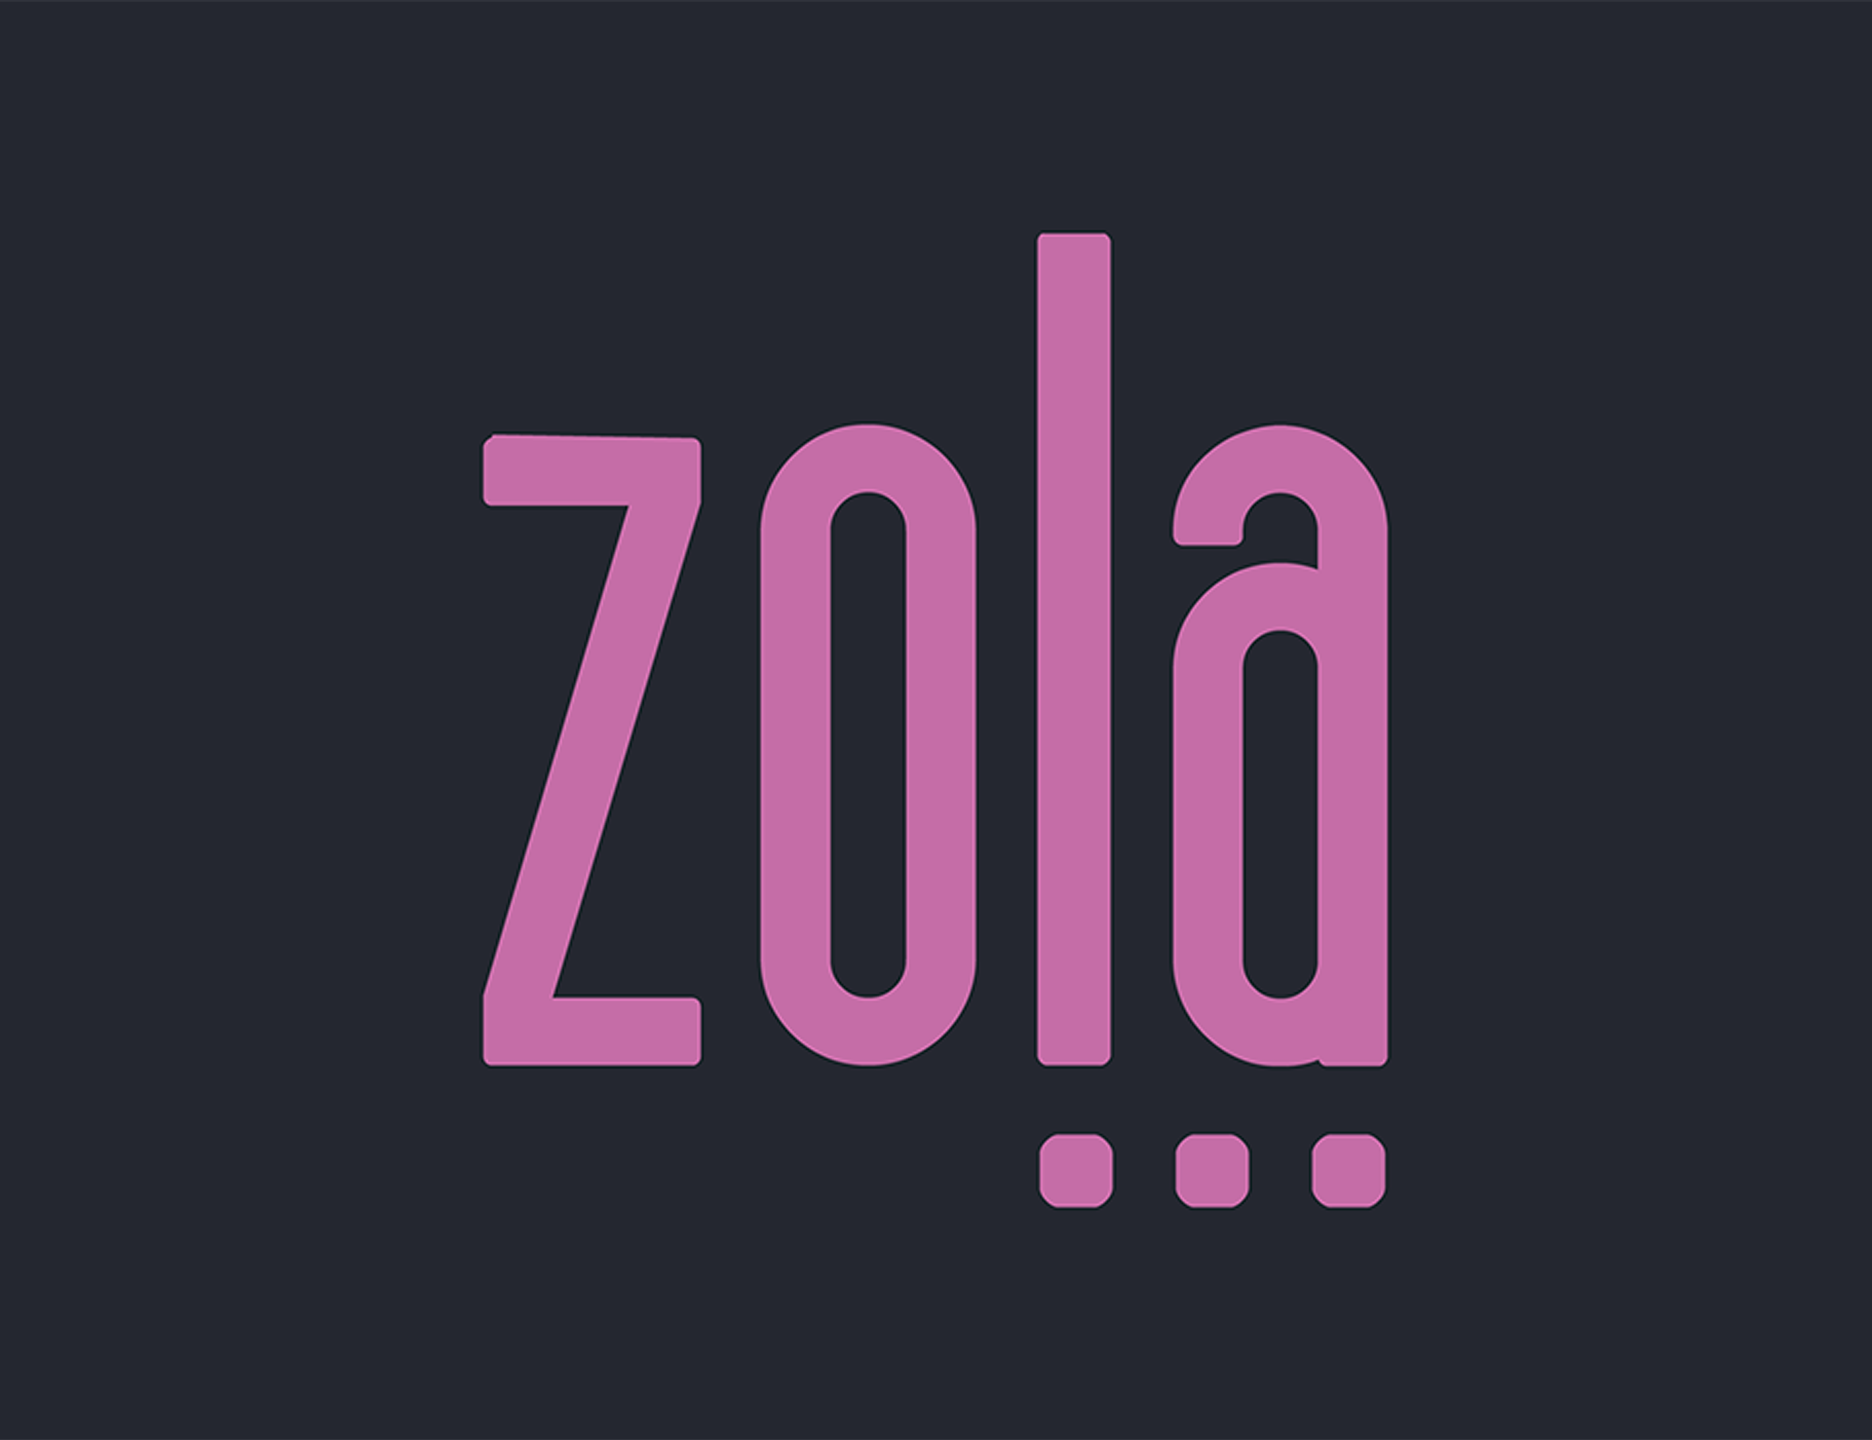 """Logo for Zola (word art, purple text on black background, with 3 dots under """"l"""" and """"a"""")"""